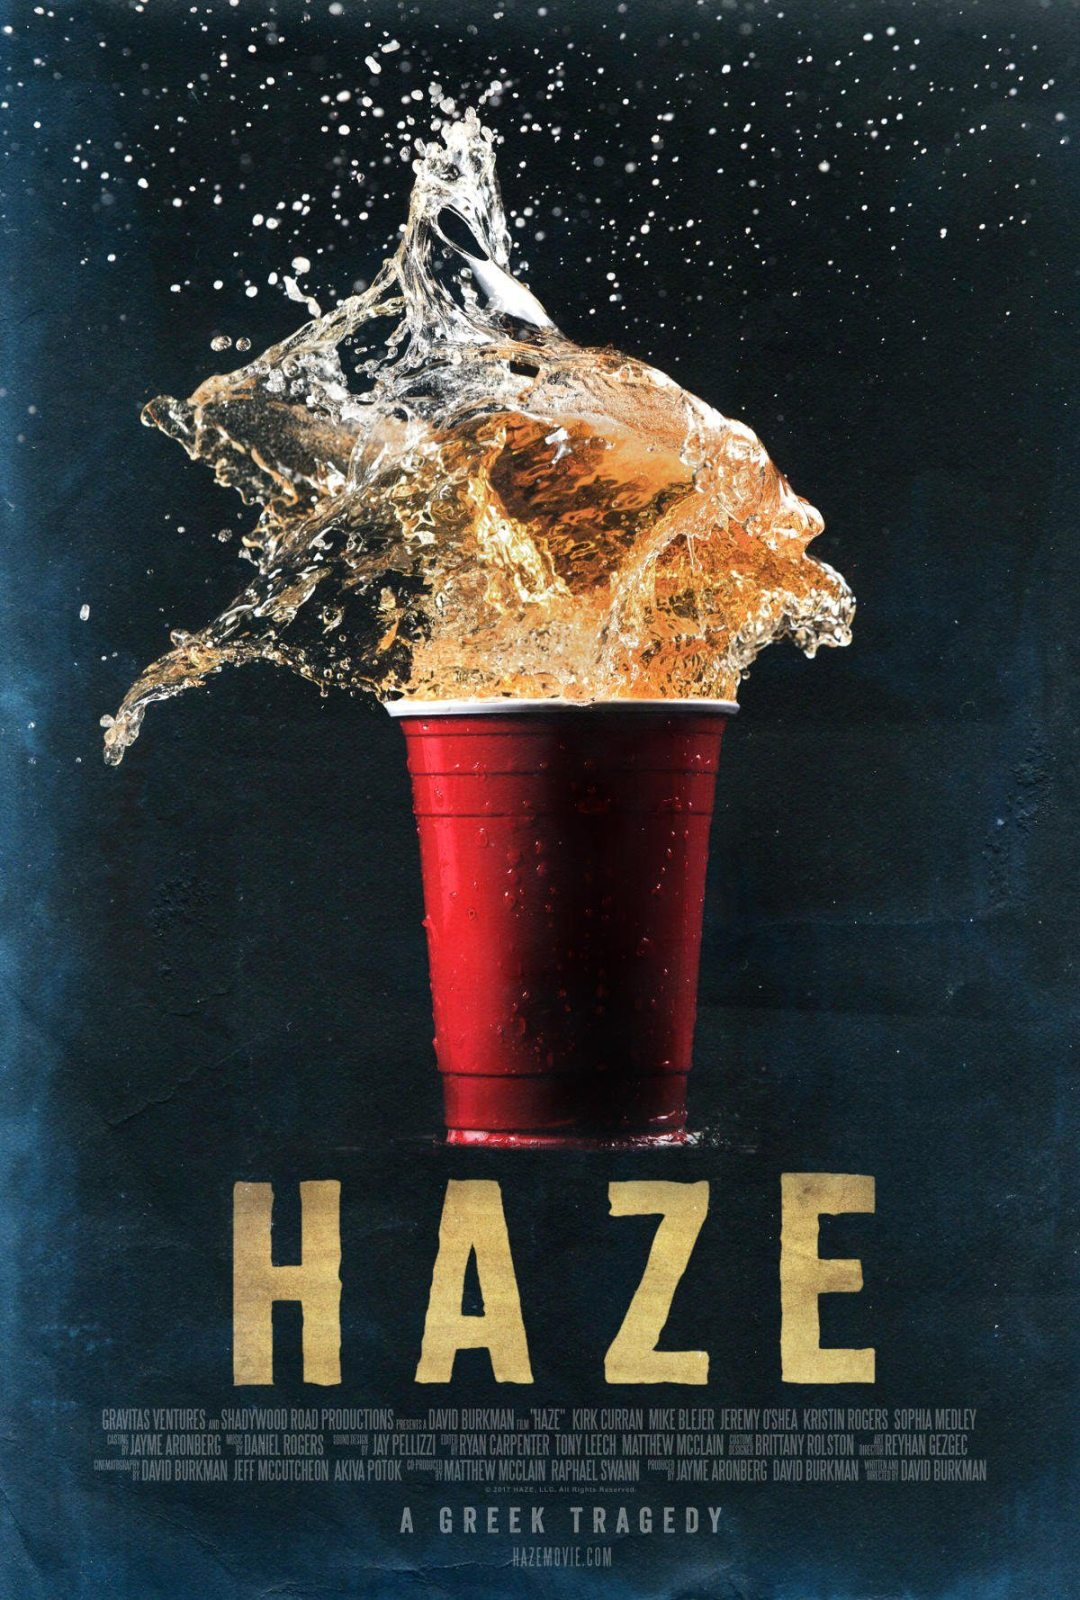 A New Poster and Trailer Are Out for 'Haze'